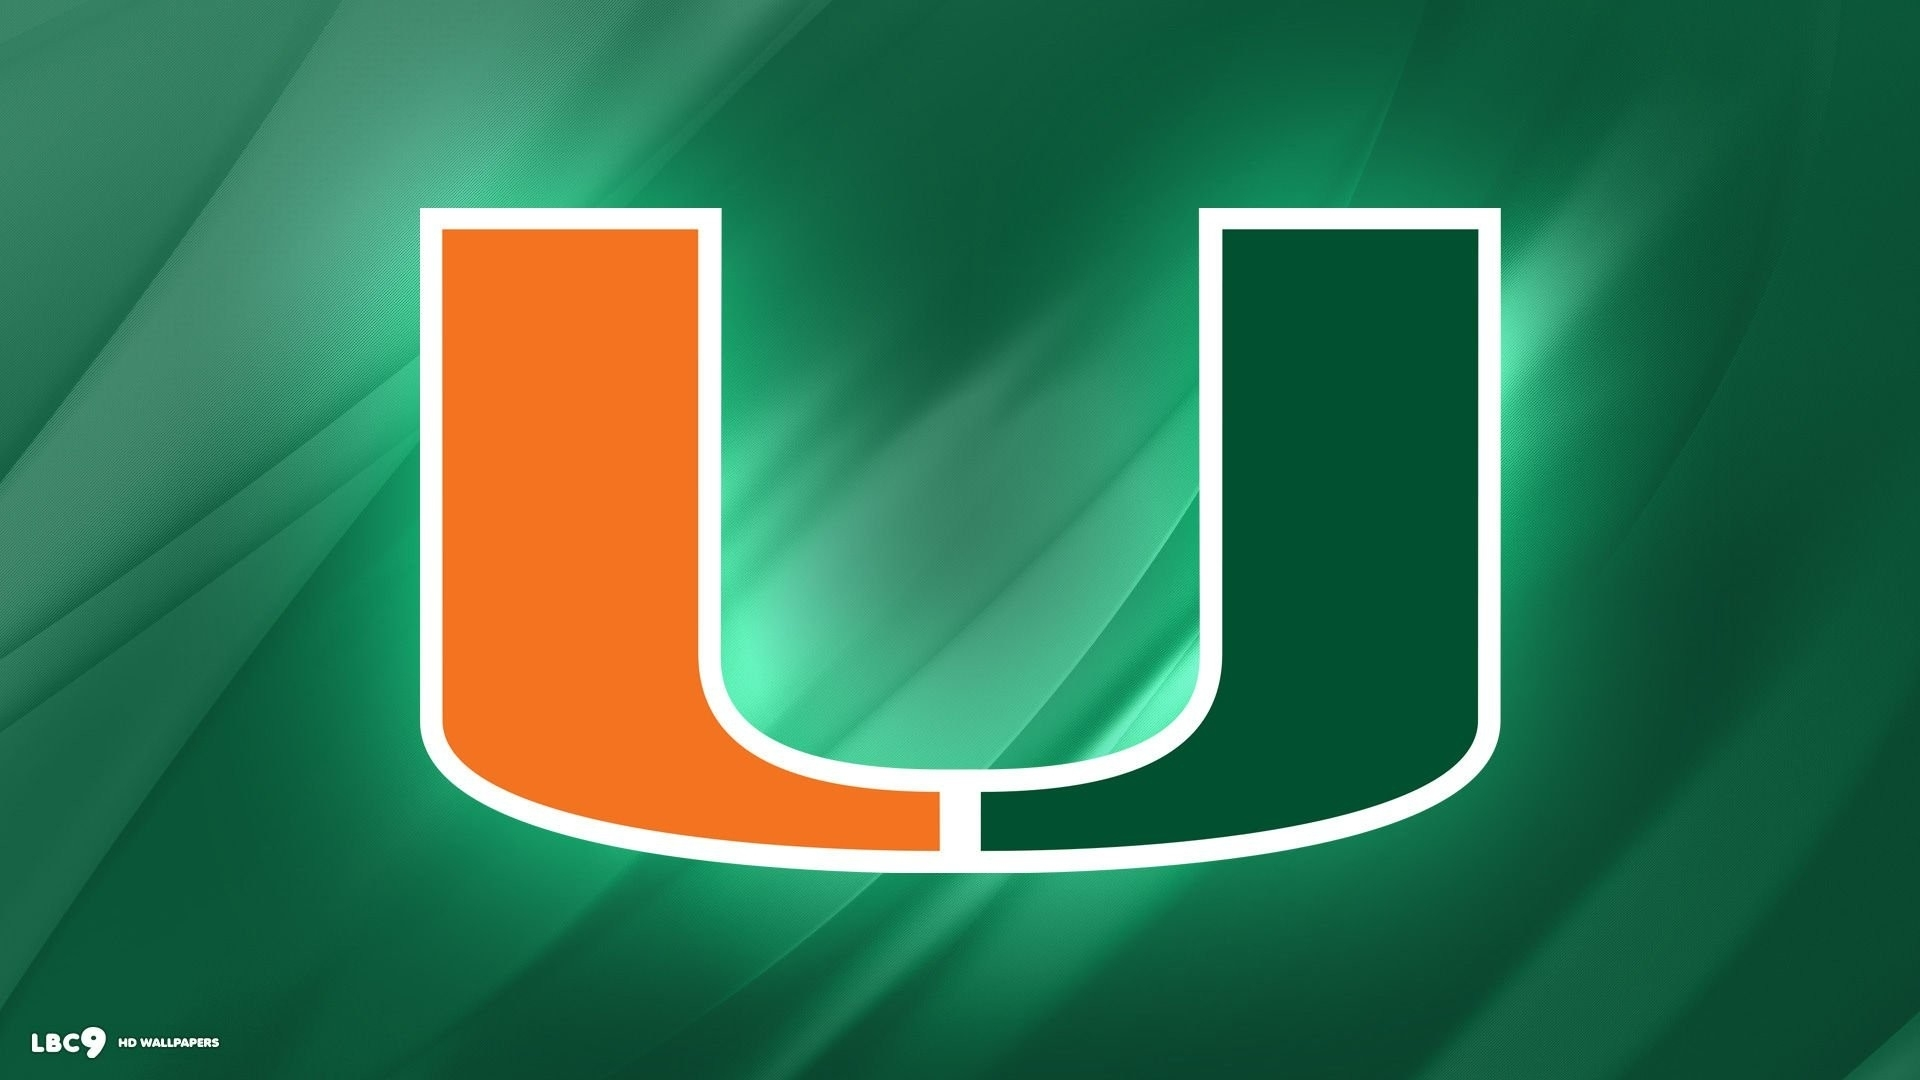 university of miami wallpaper ·①